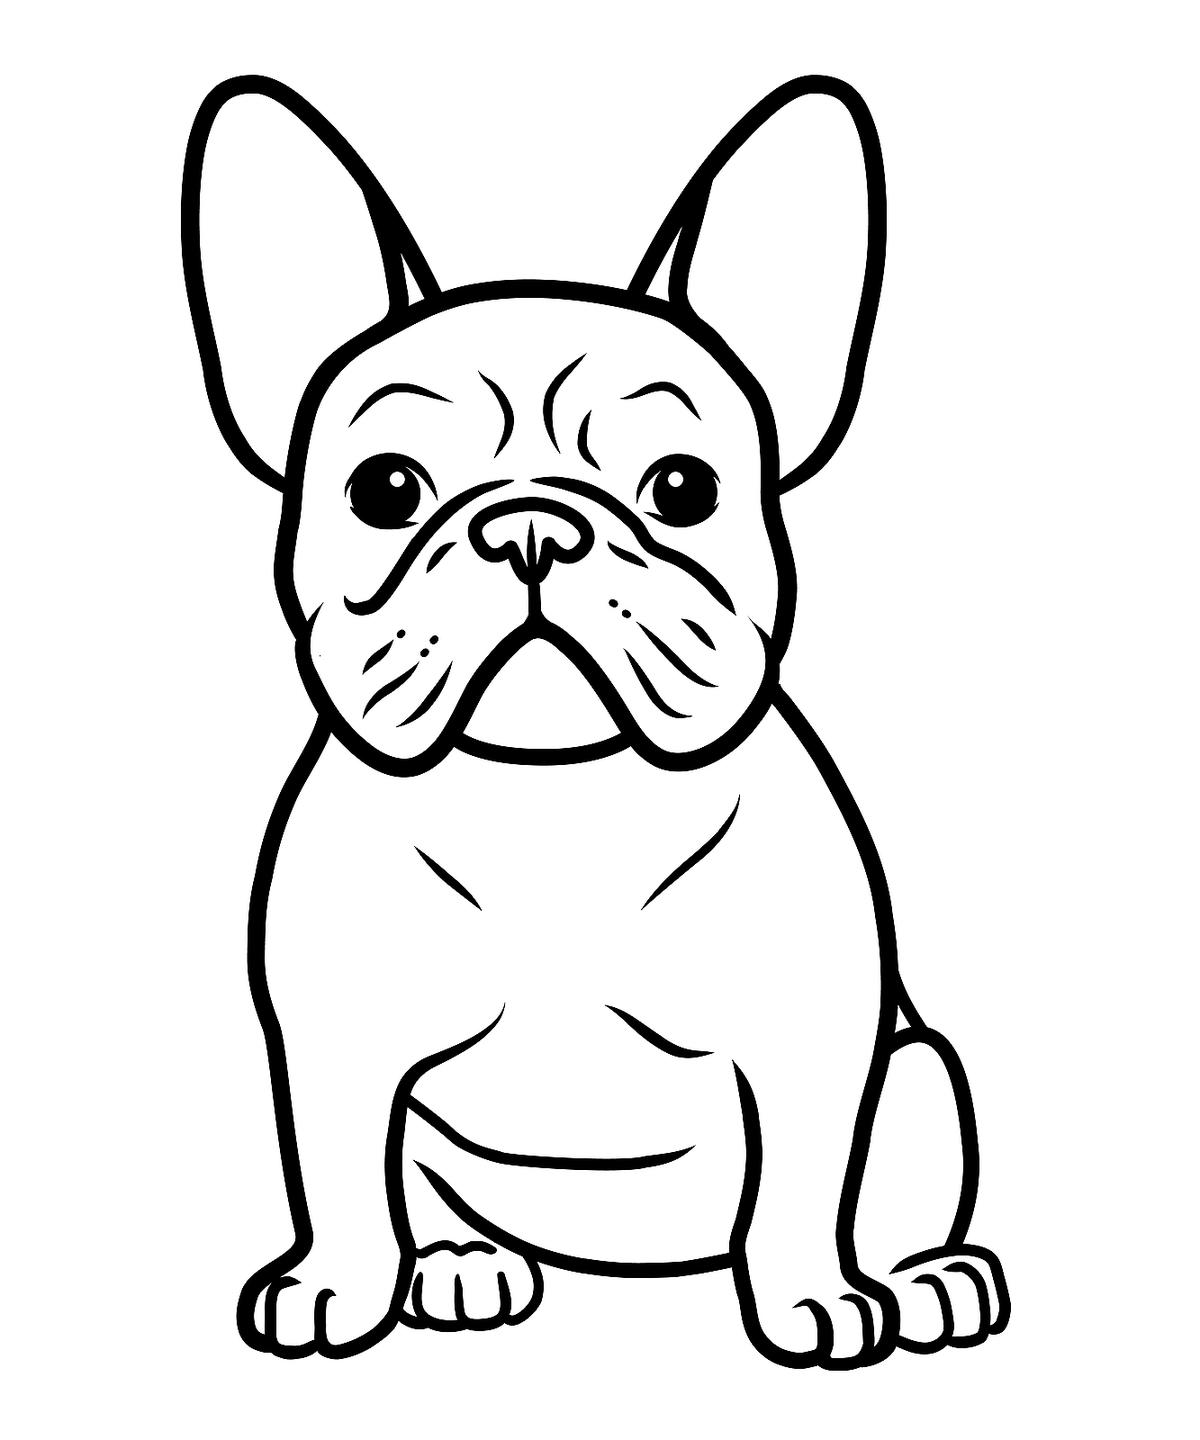 Dog Coloring Pages: Printable Coloring Pages of Dogs for ...